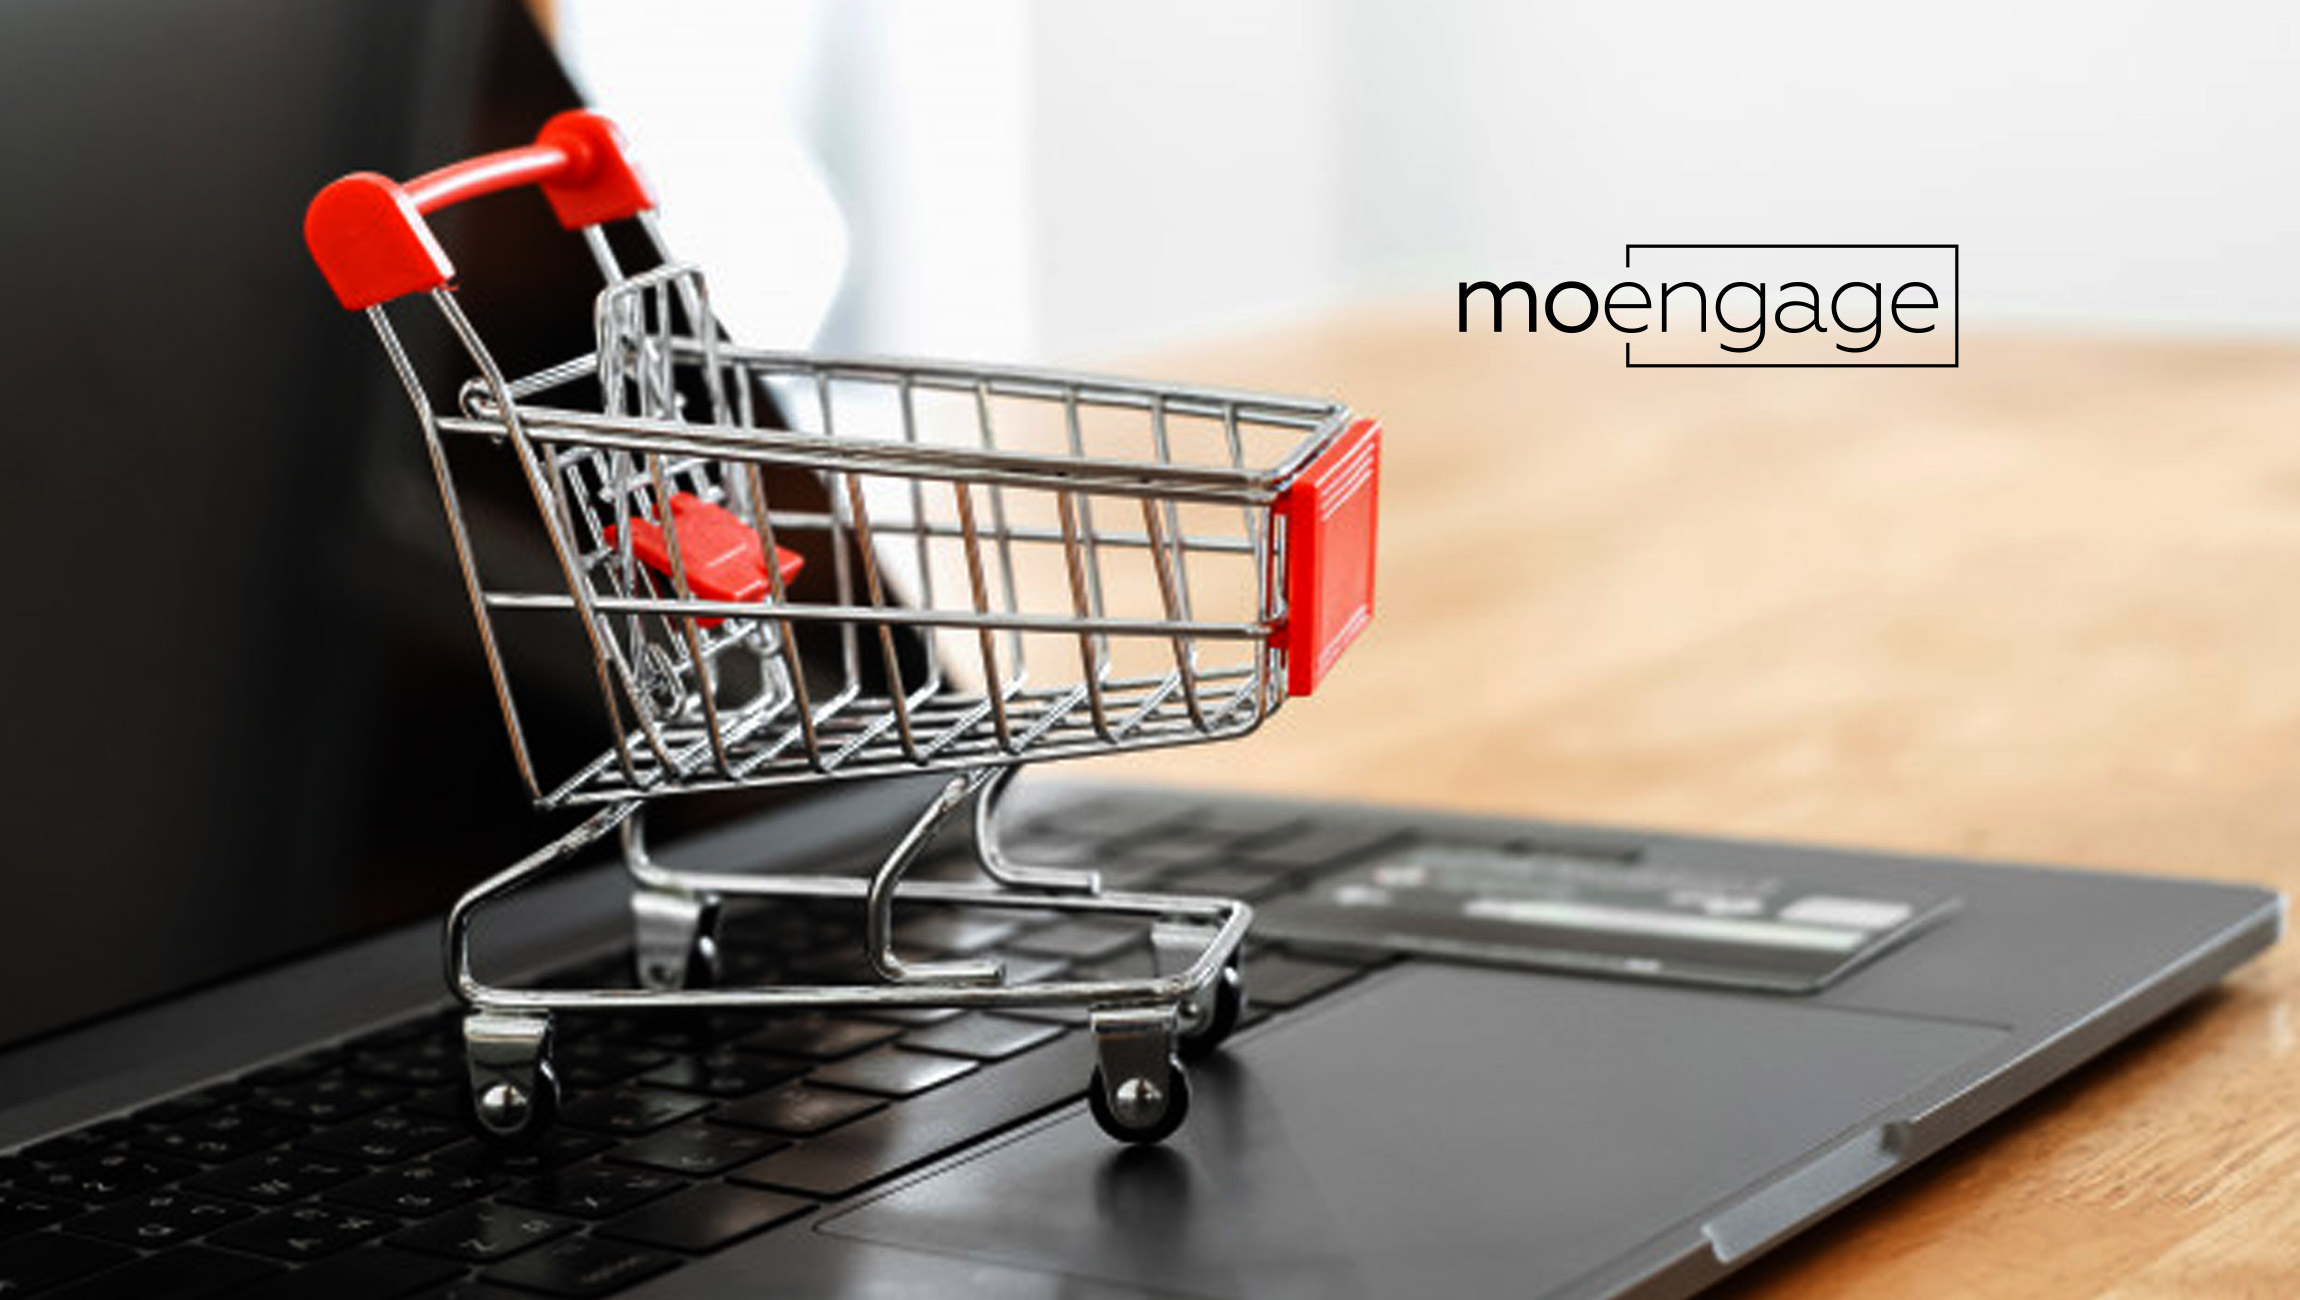 MoEngage and Vidora Partner to Enable AI Powered Customer Engagement